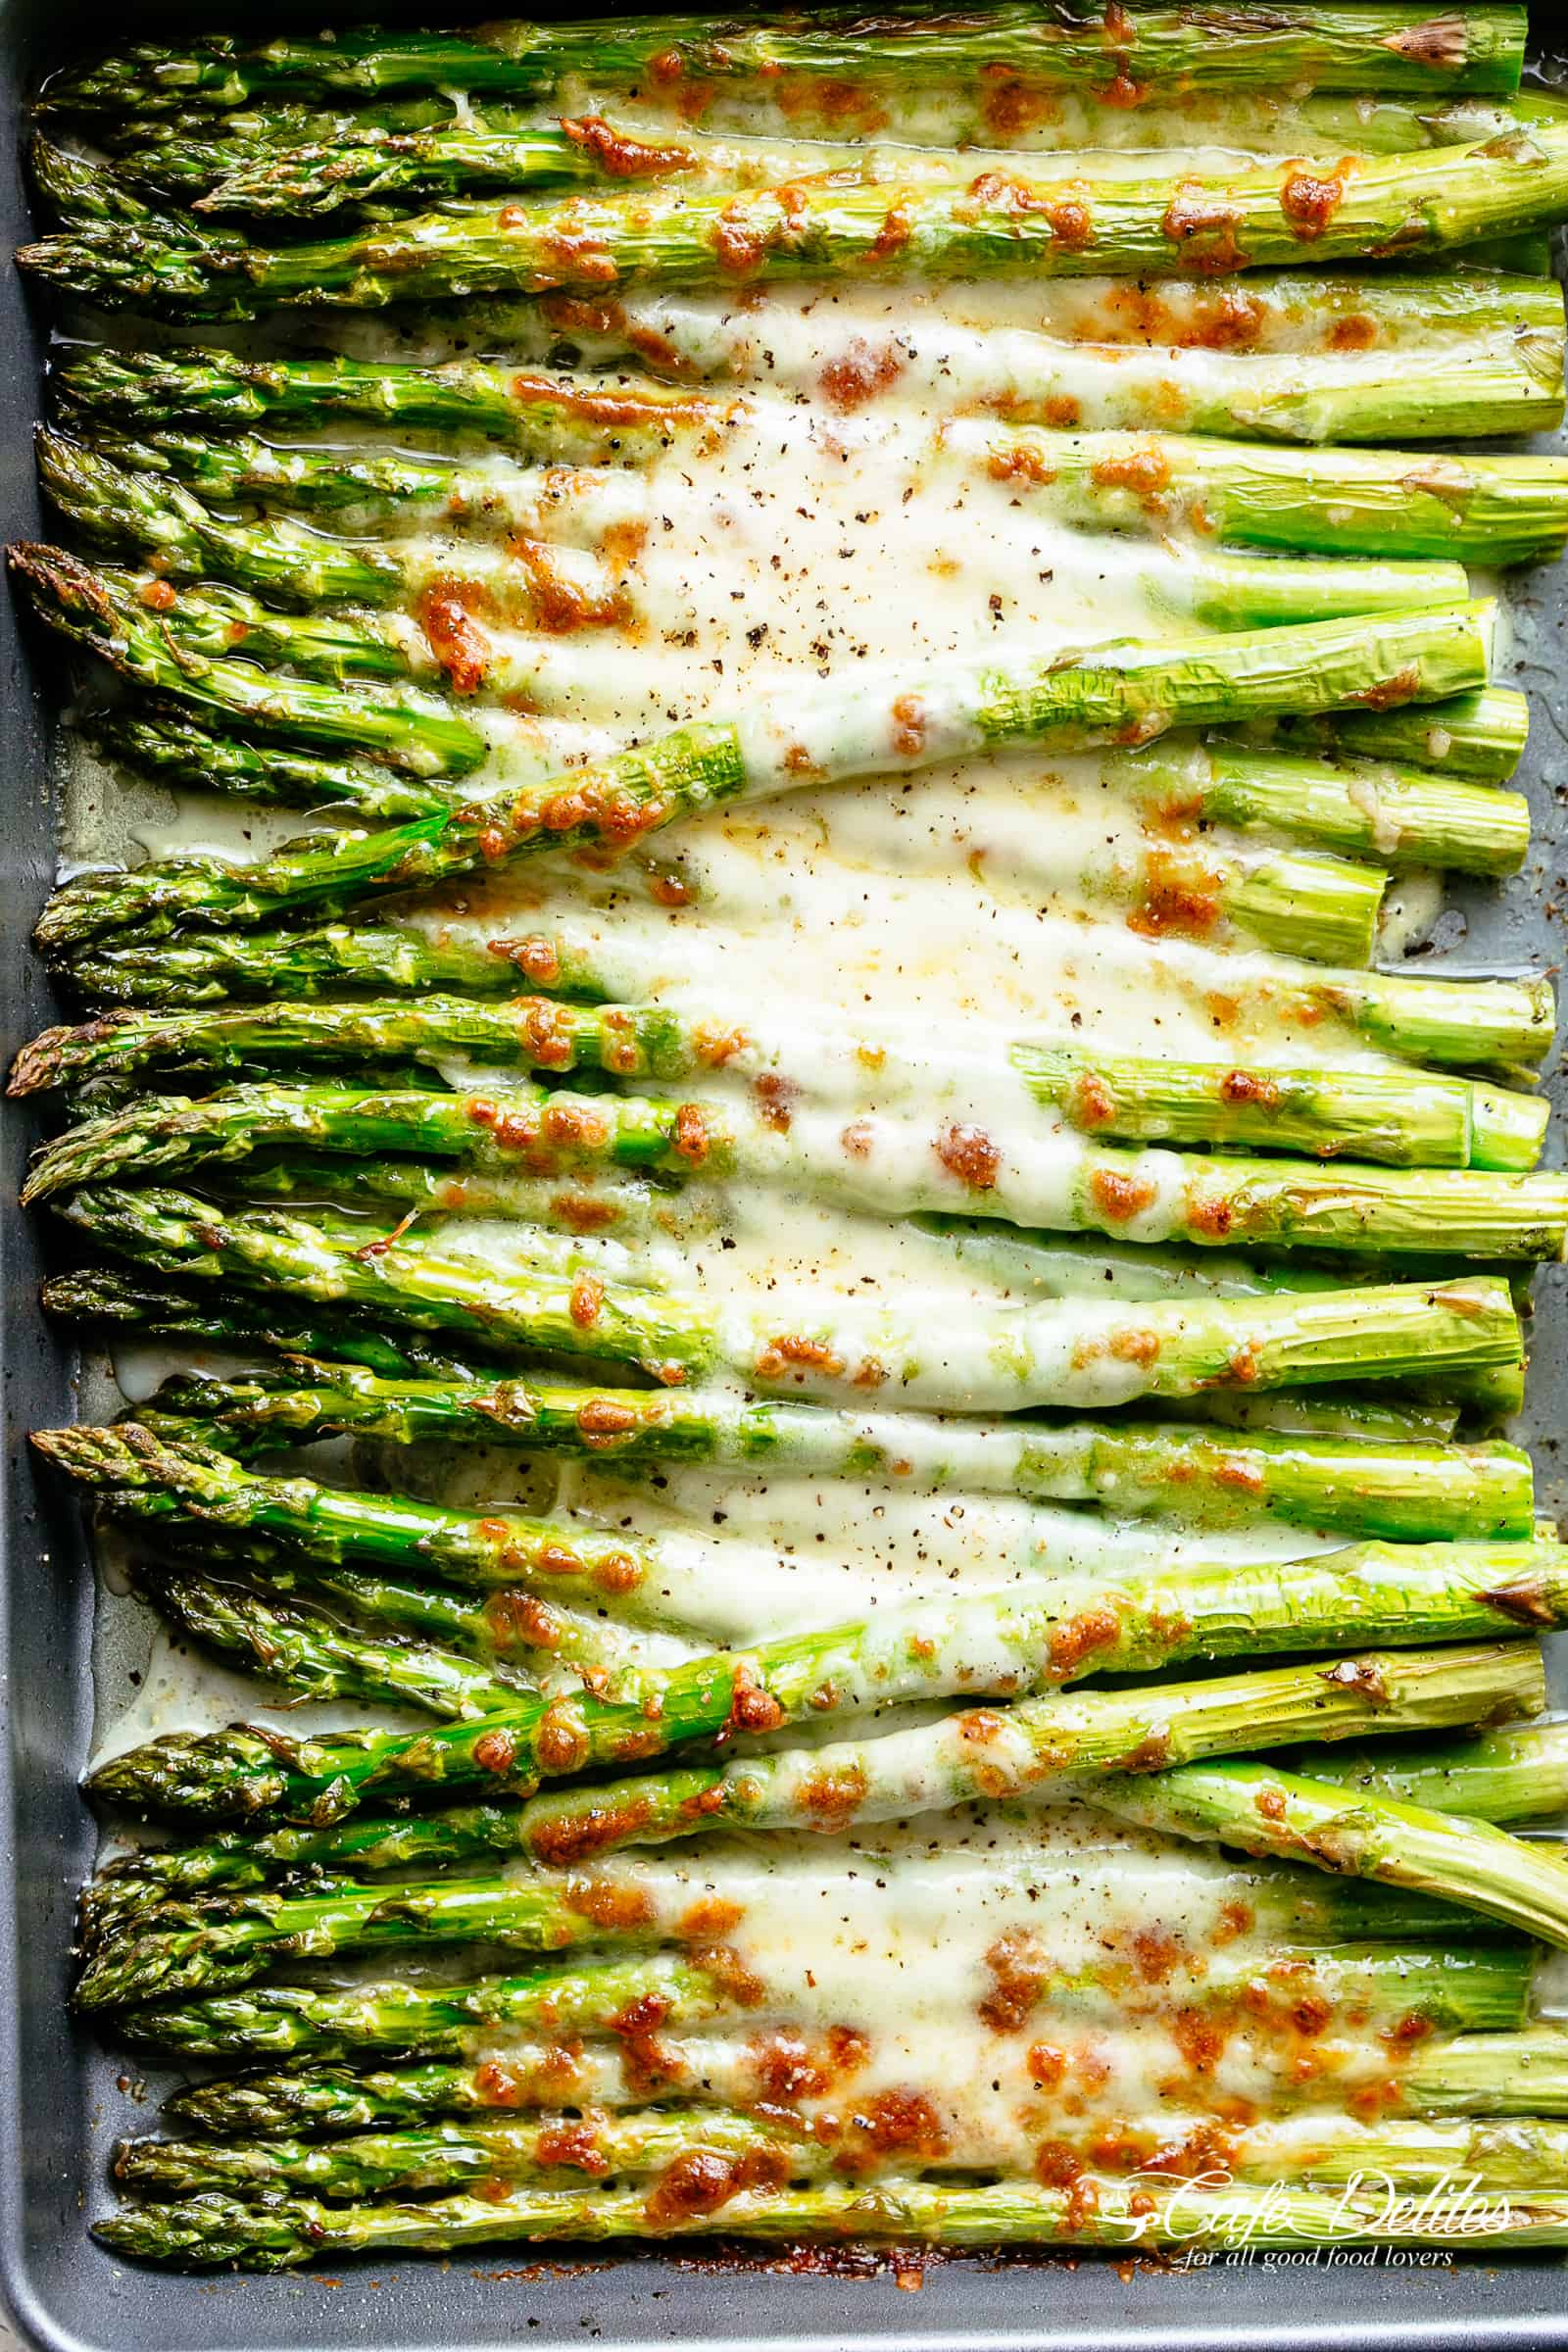 6. Cheesy Garlic Roasted Asparagus